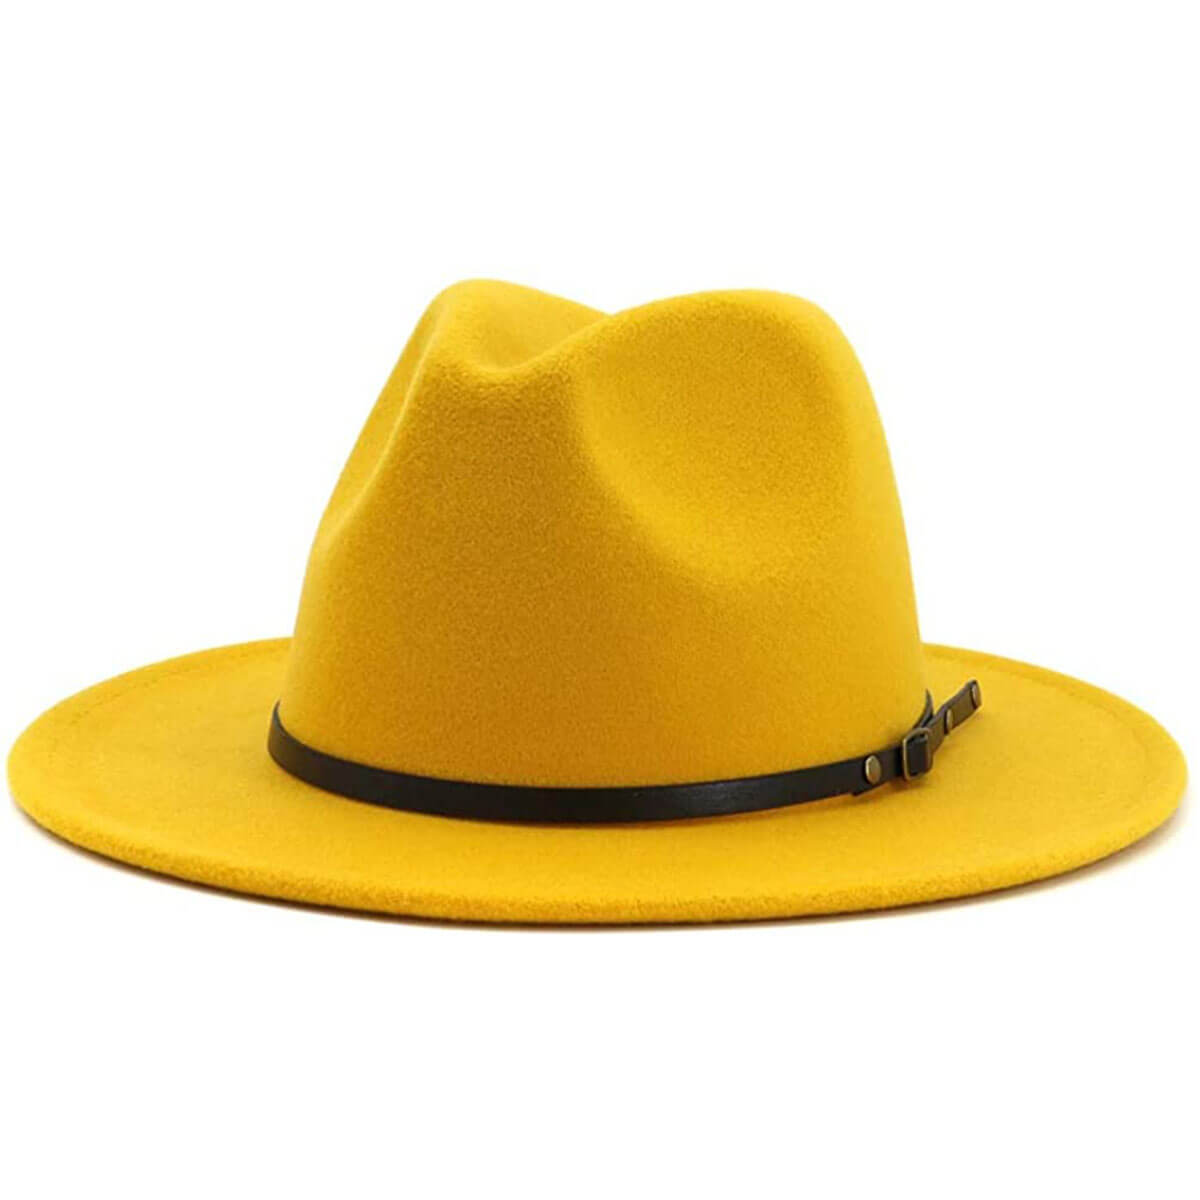 The best brimmed hat